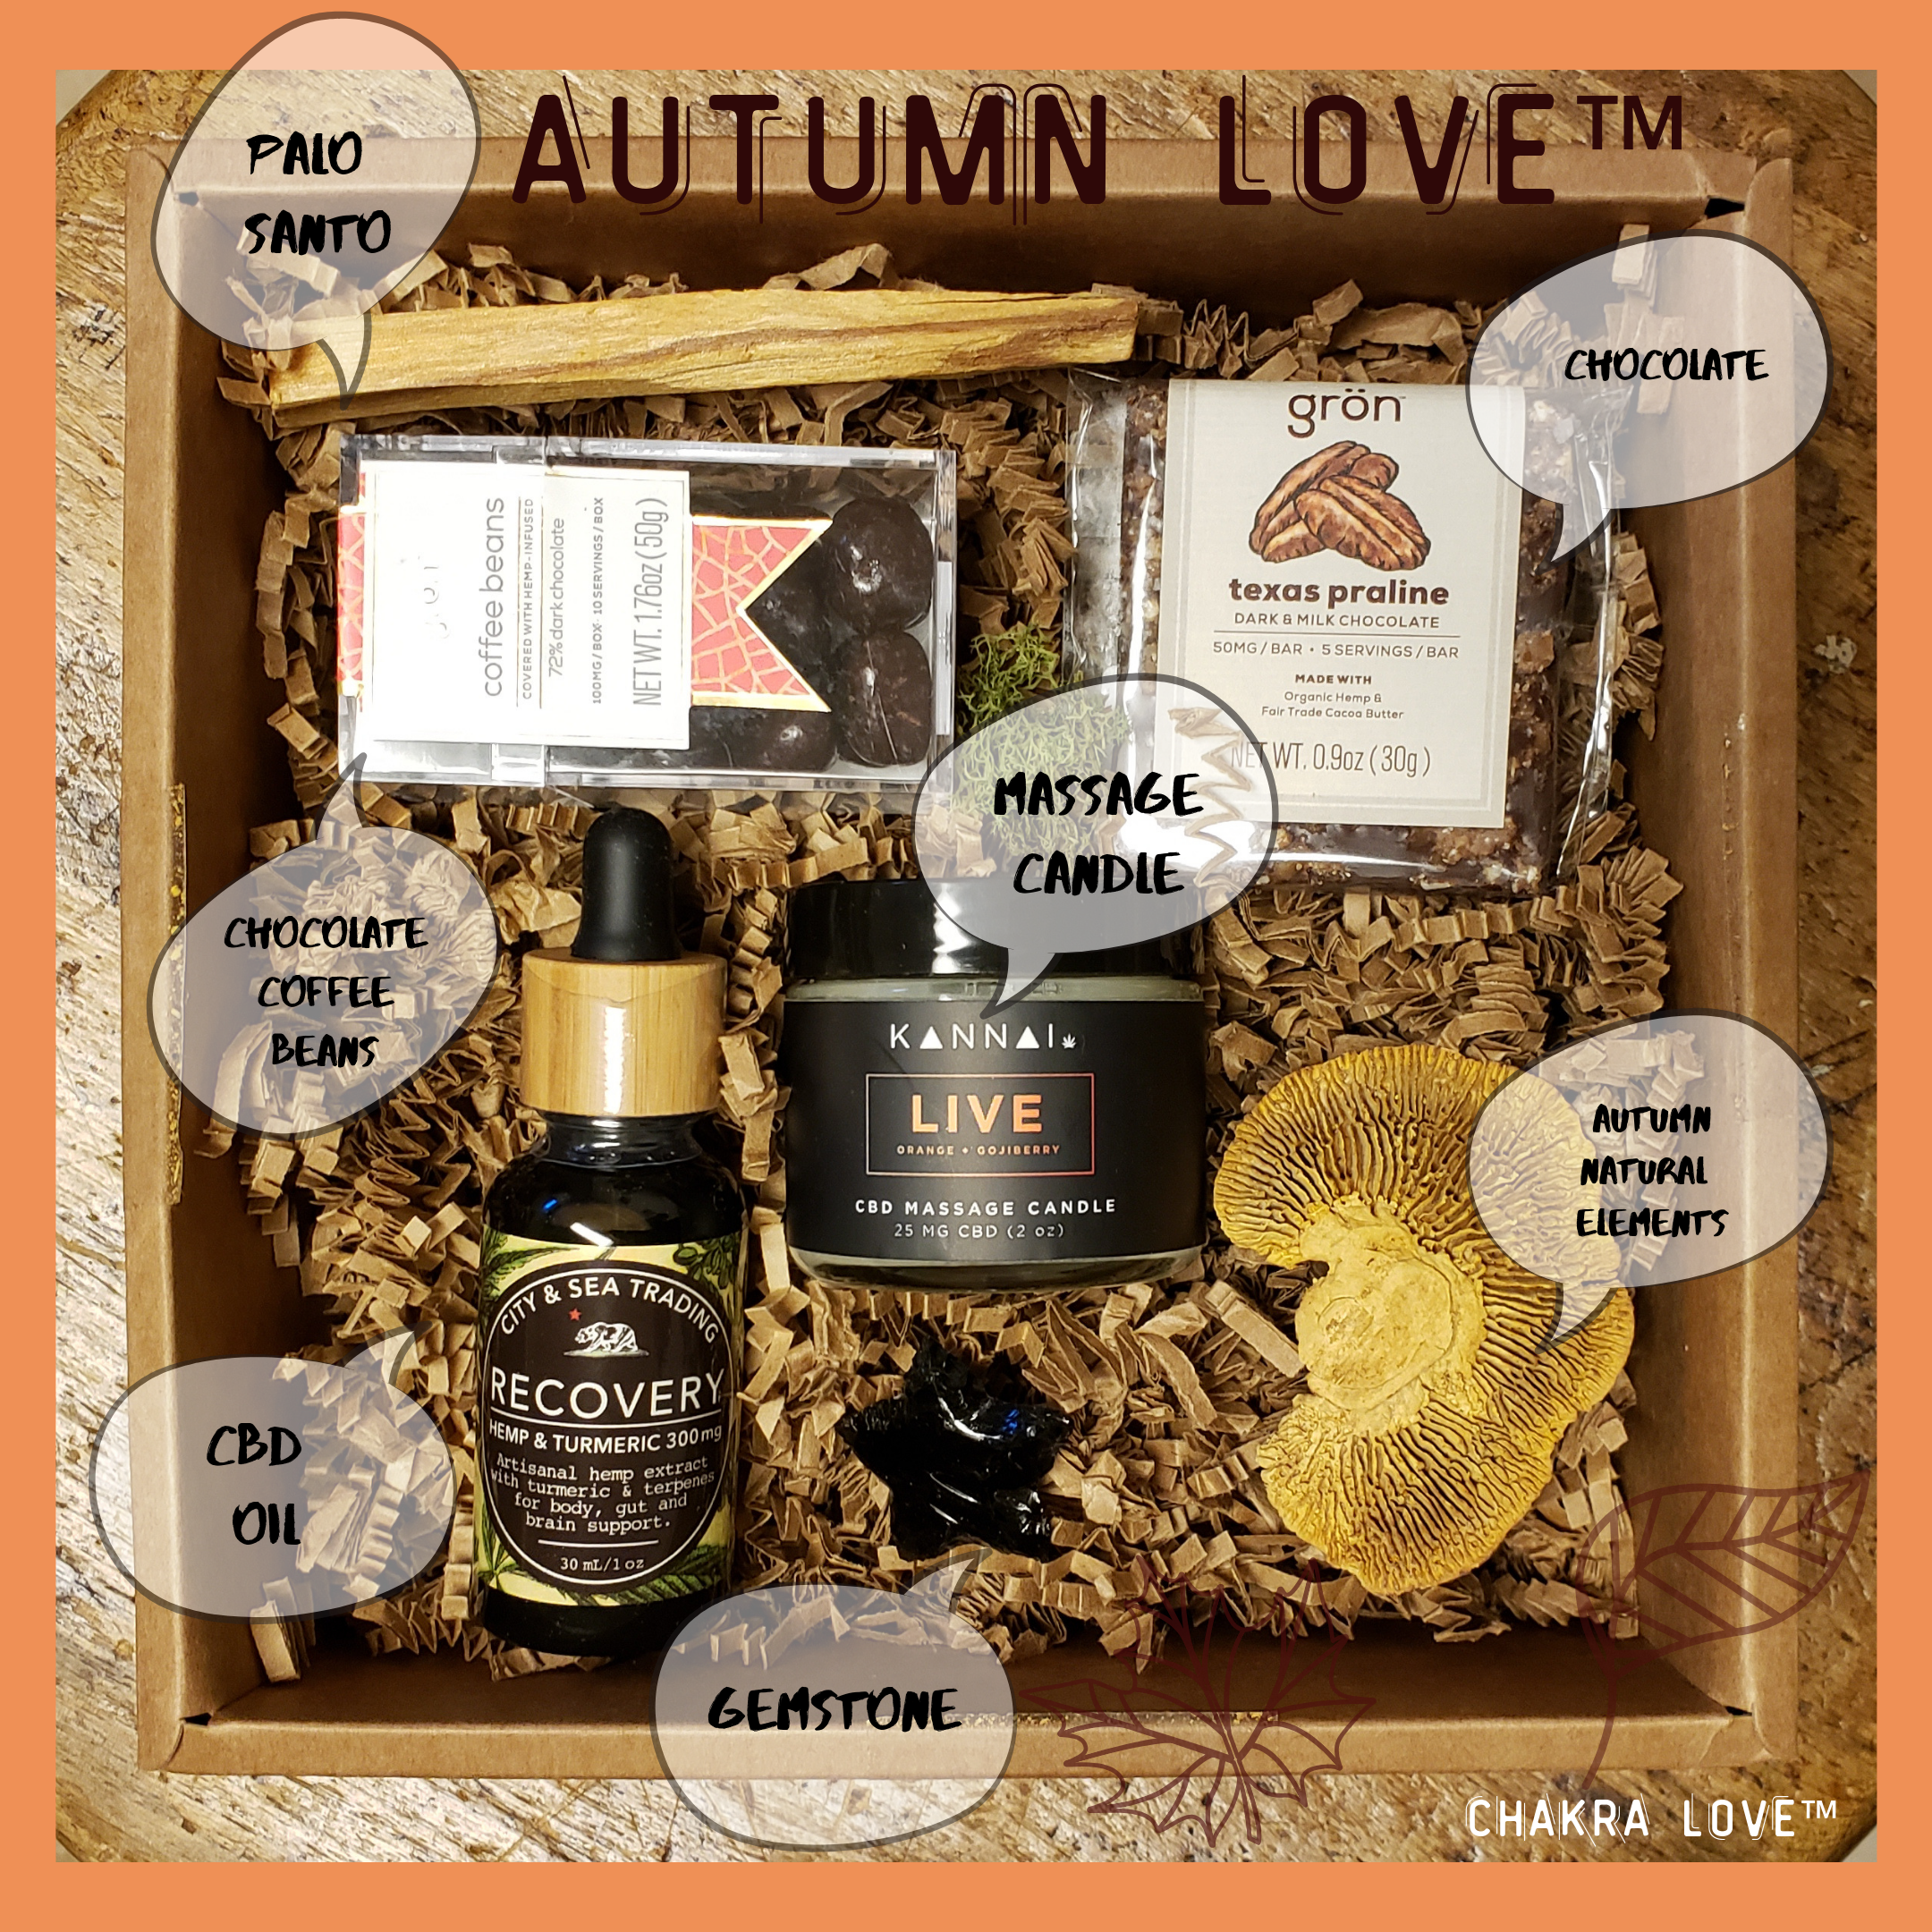 - I am falling in love… the Autumn box includes finely curated CBD goods (massage oil candle, chocolate, oil tincture, espresso beans and more.)